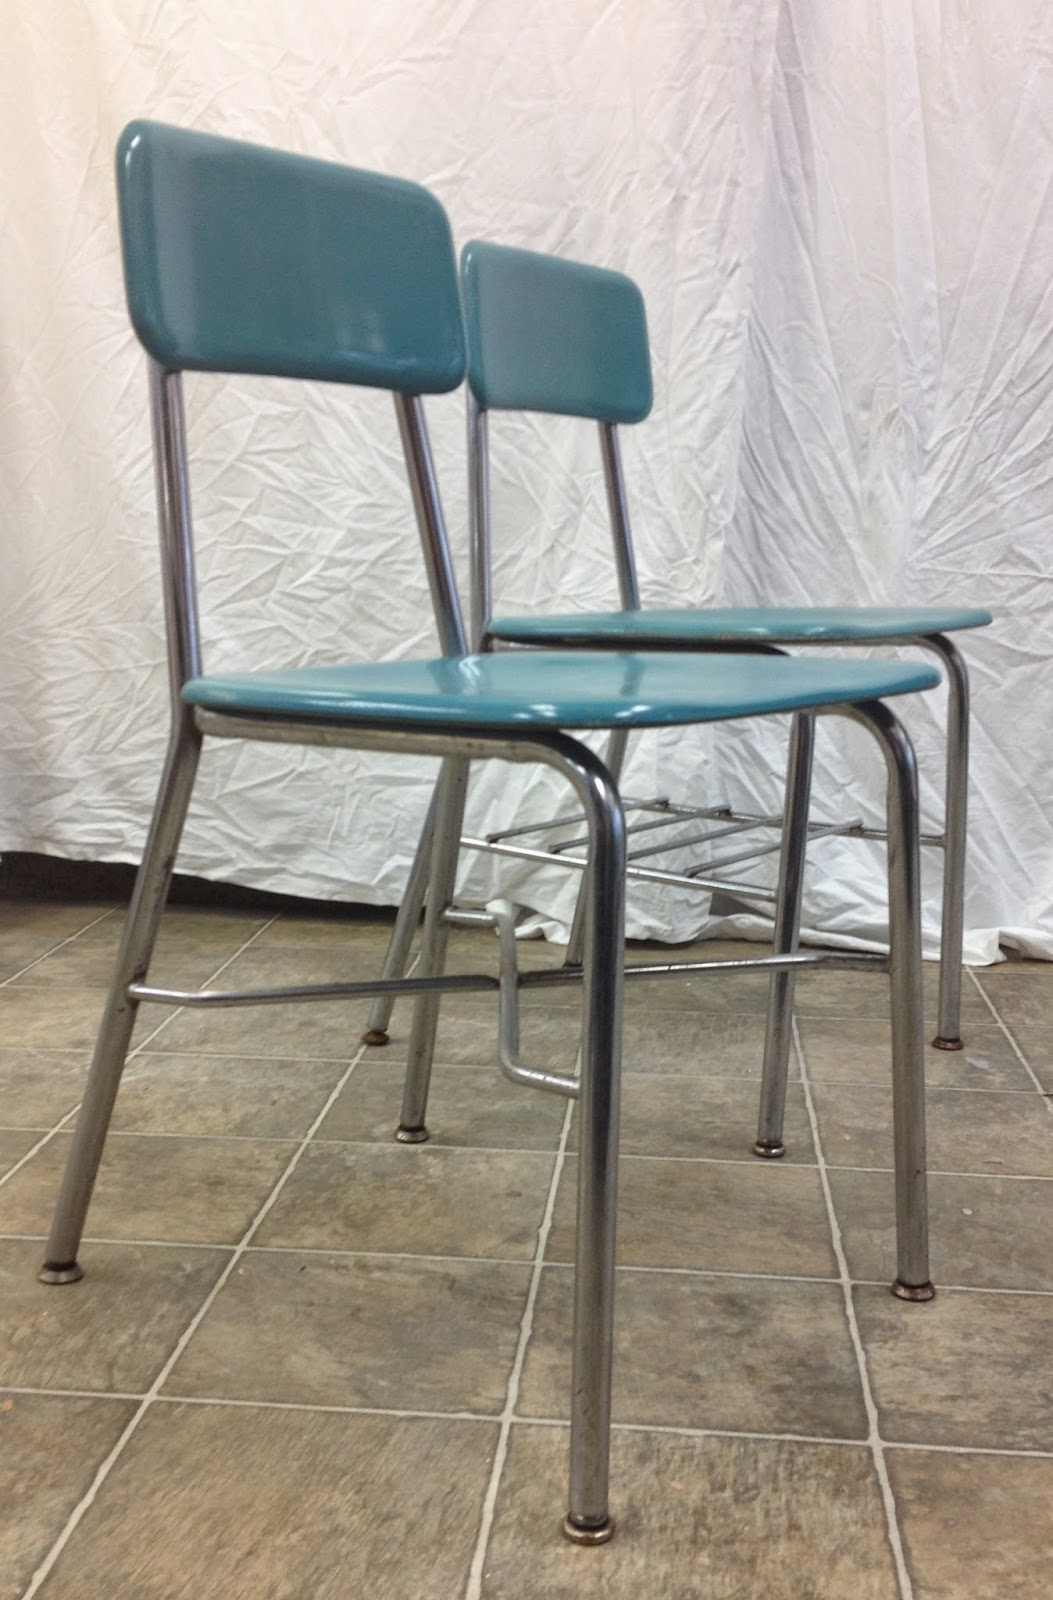 Heywood Wakefield Chairs Chair Cover Hire Dudley Time Capsule Pair 1960s